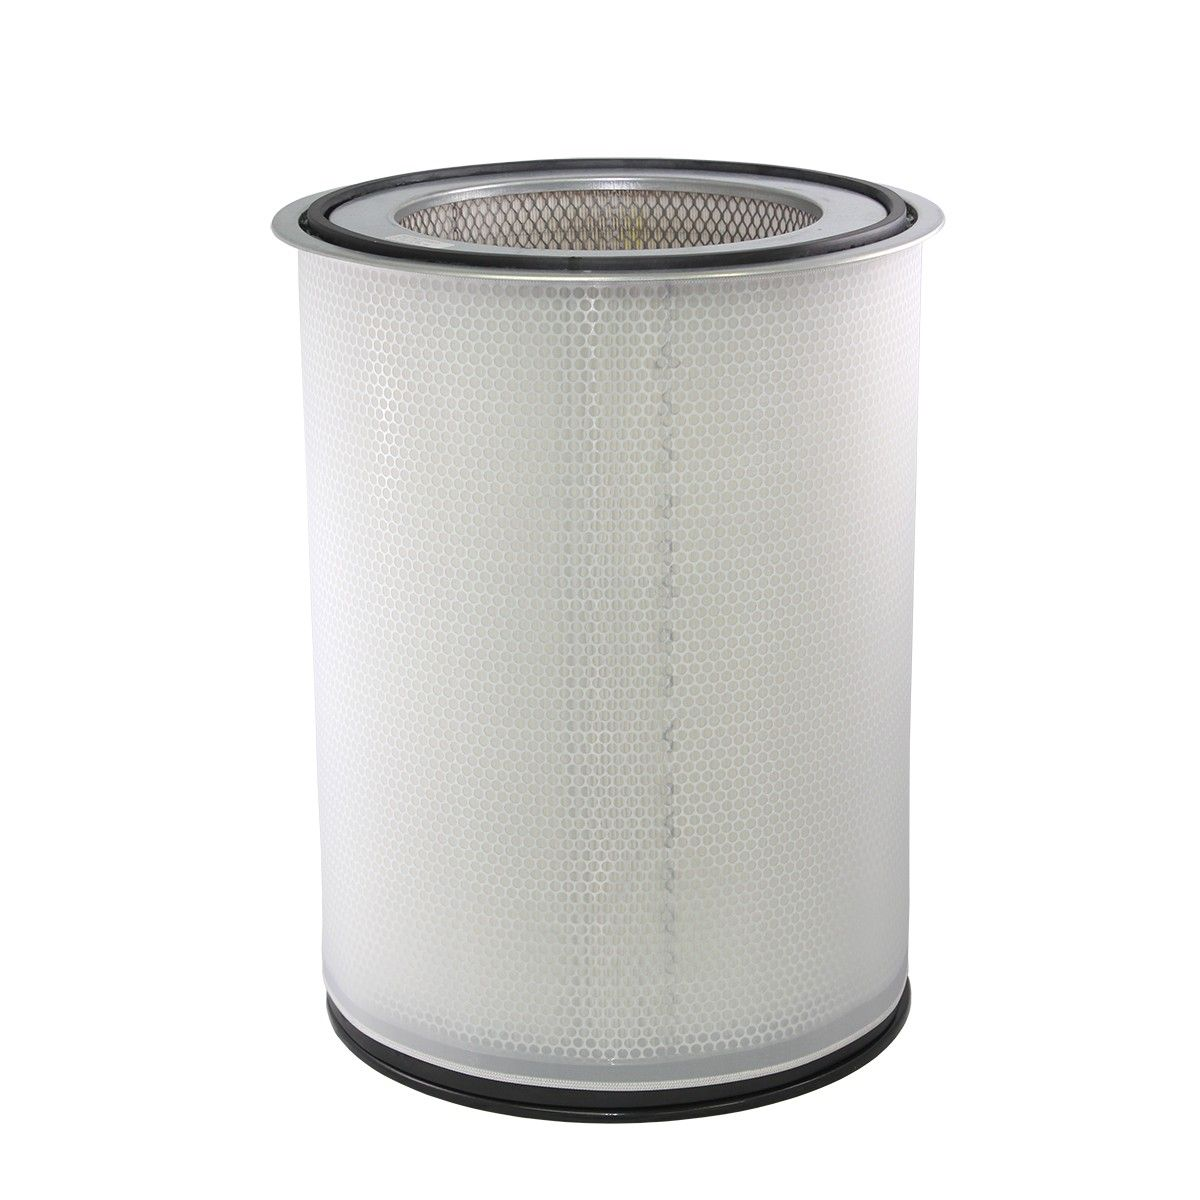 Torit Vibra Shake Heavy-Duty Cartridge Filters - Designed for Torit VS-1500 (Z42-013) / Torit VS-3000